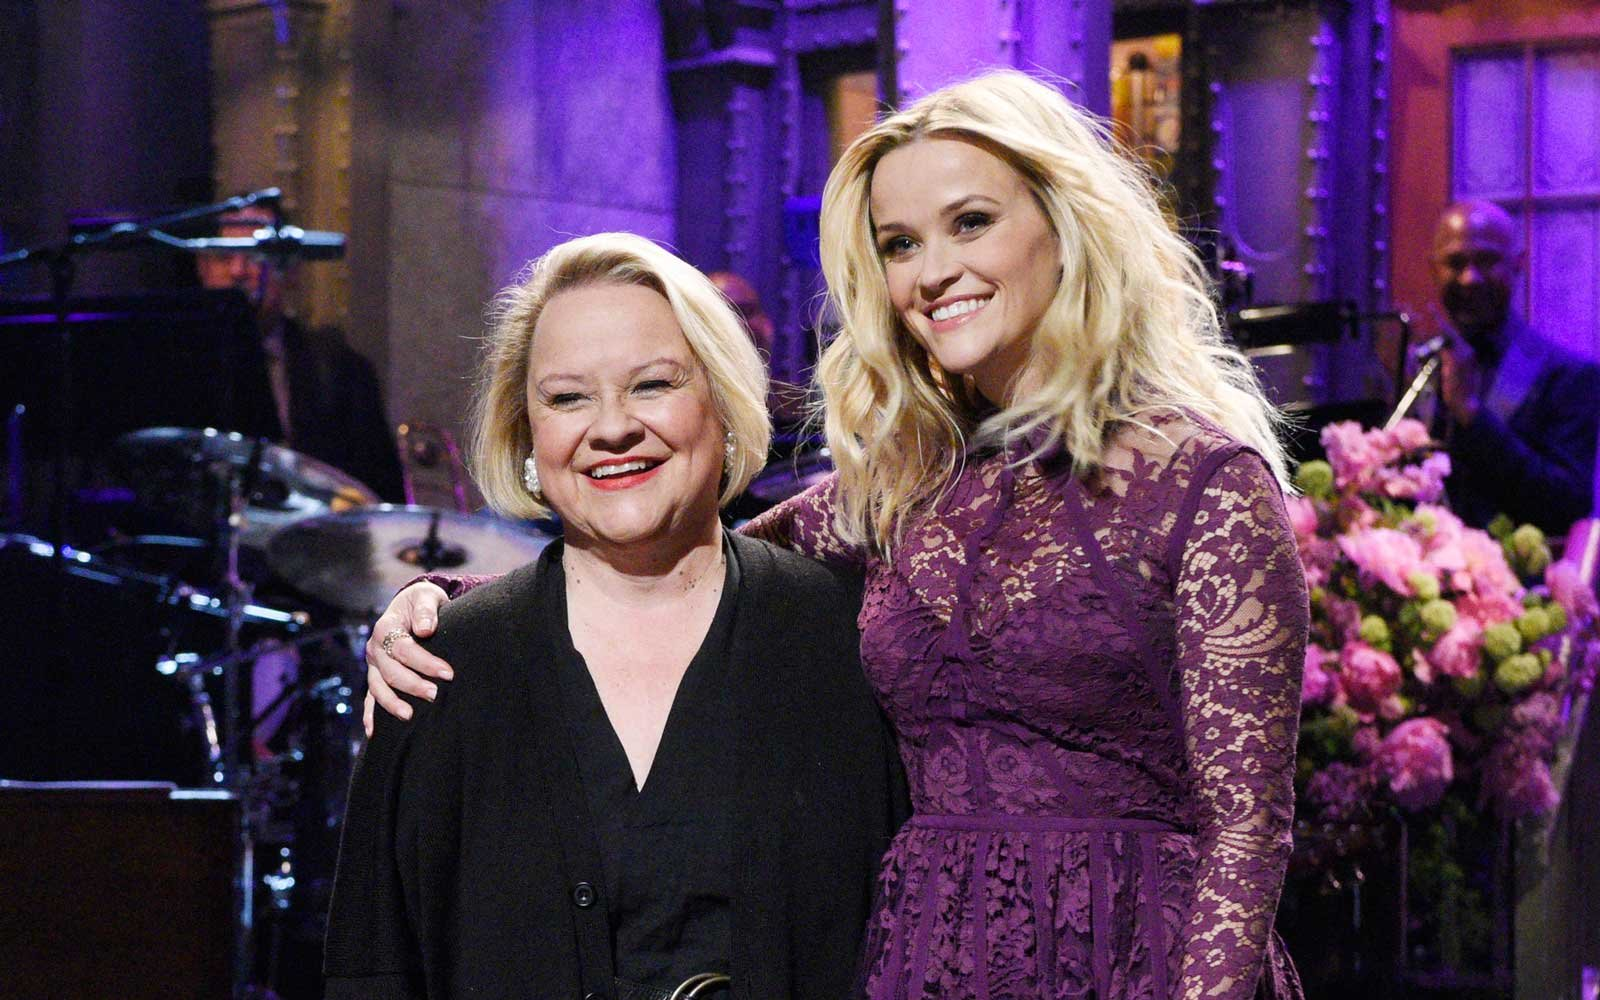 Reese Witherspoon and her mom Betty at a taping of Saturday Night Live